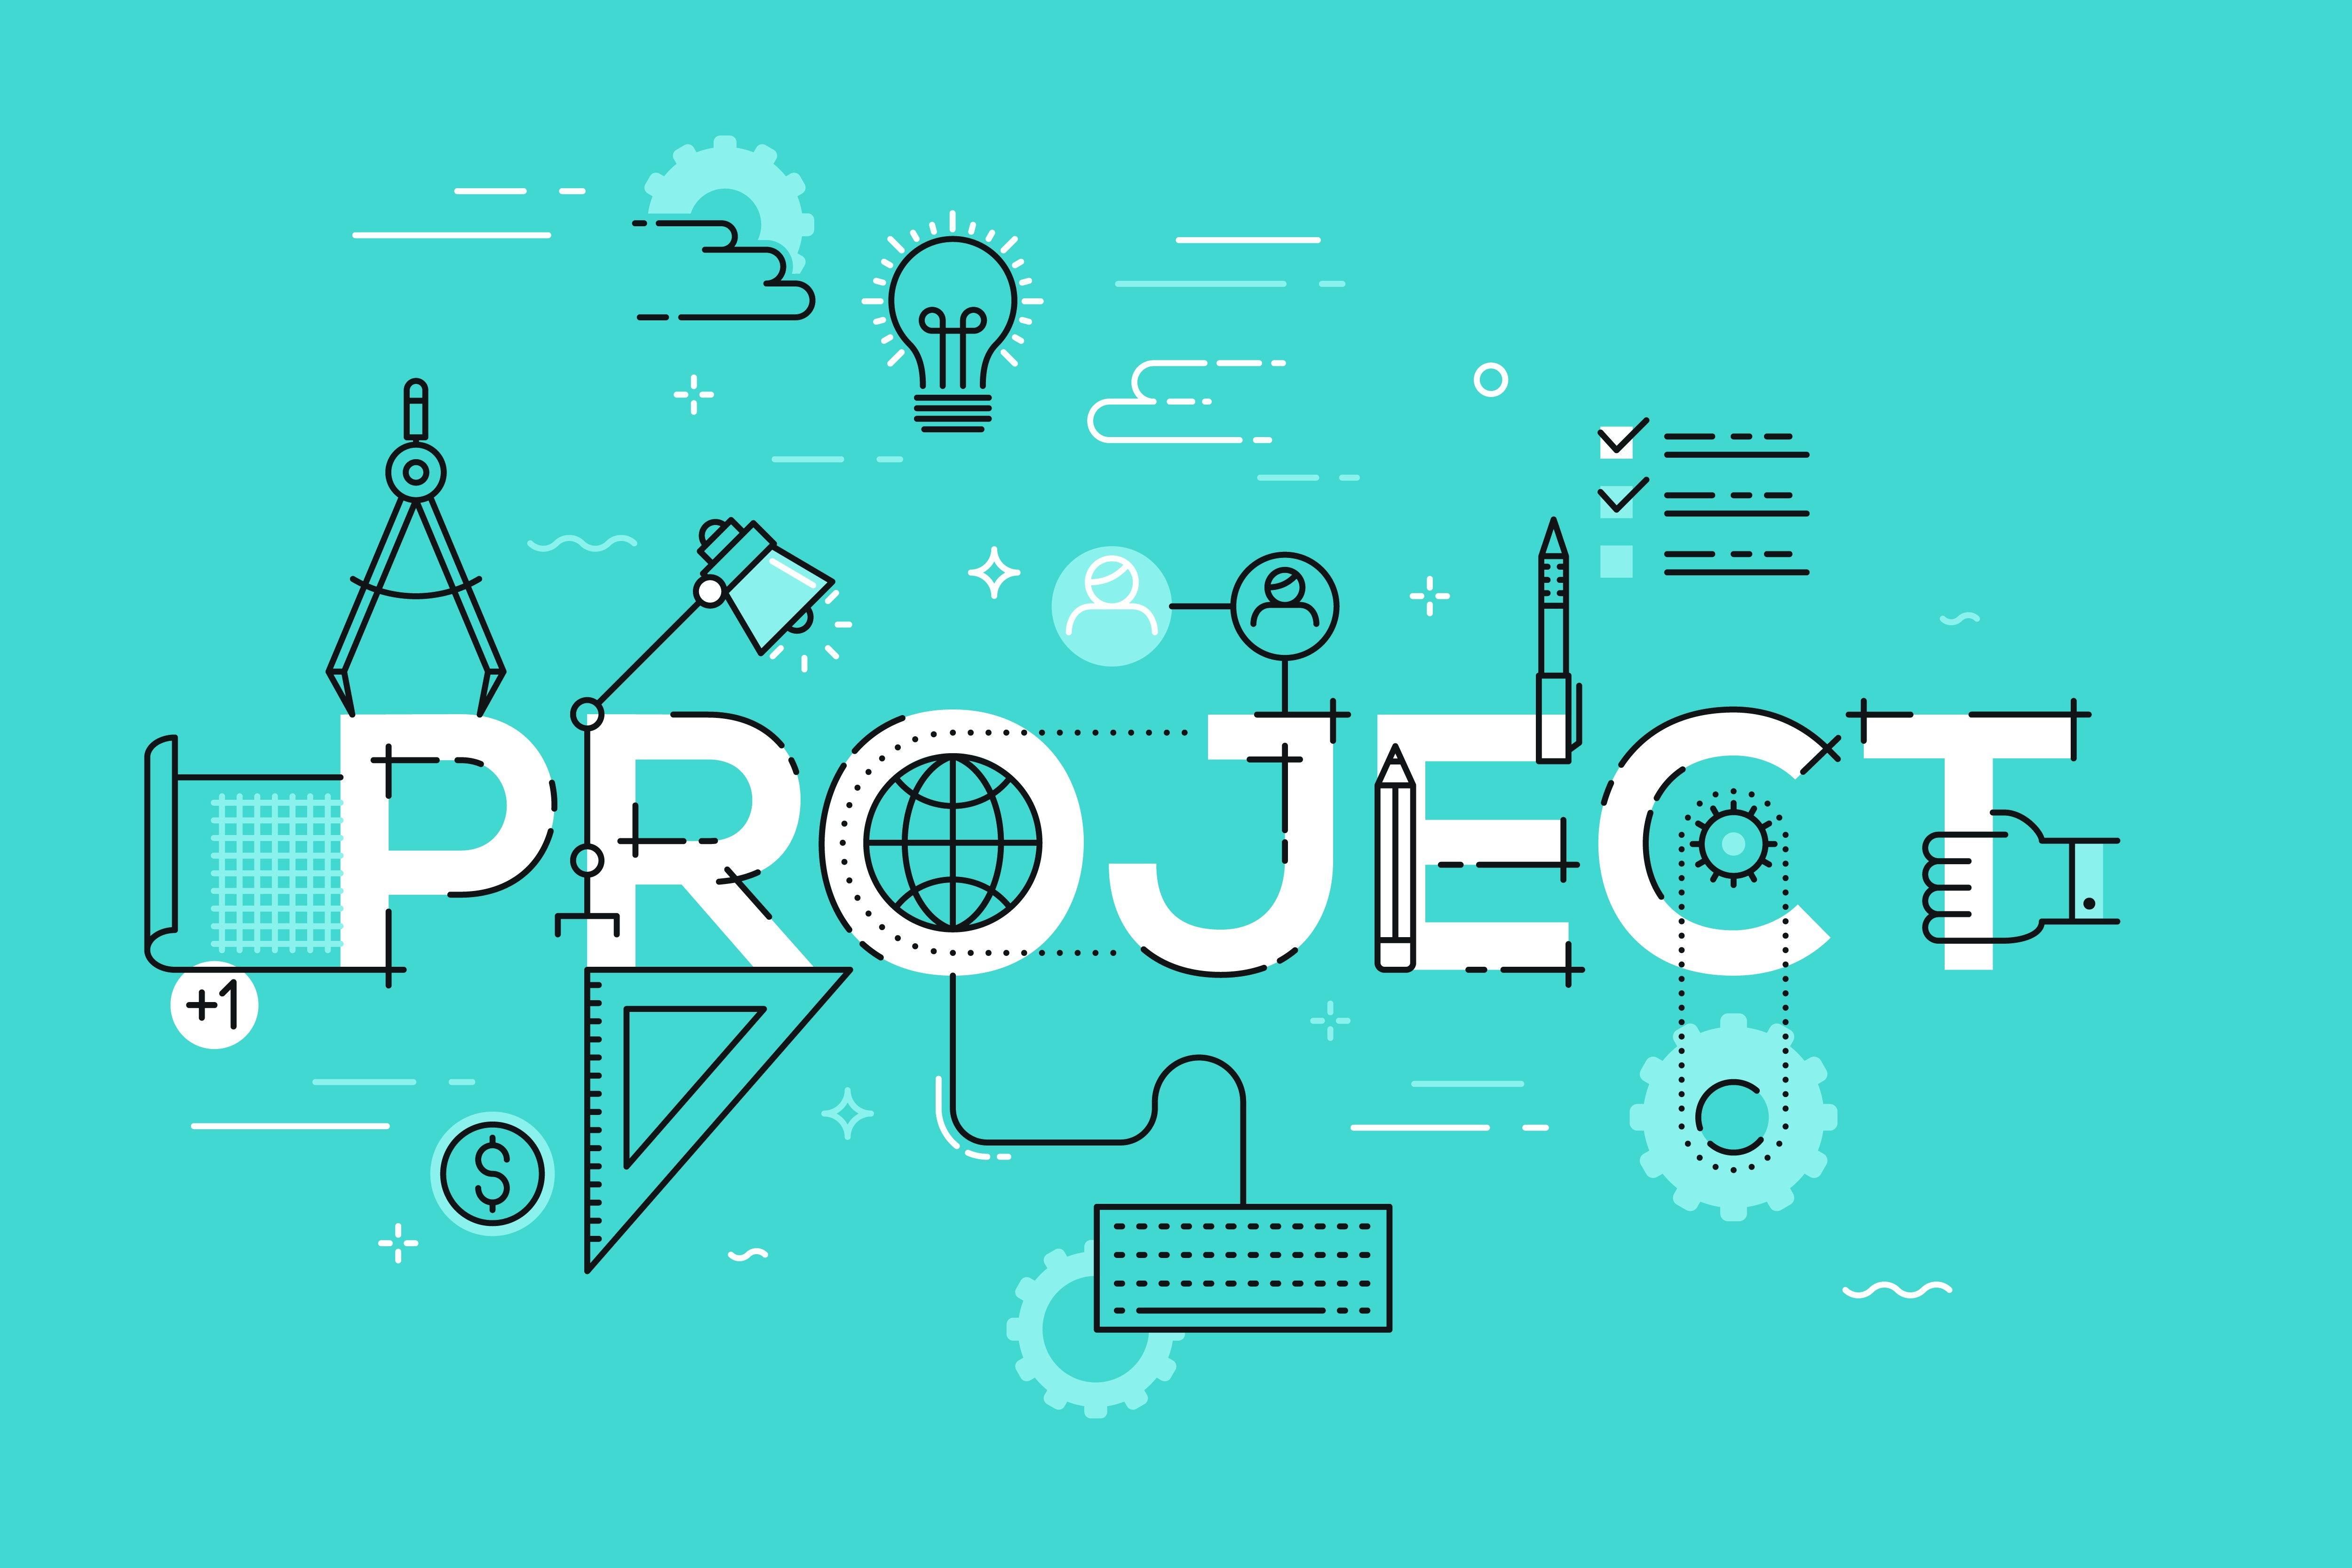 check the post:How We Handle Greenfield vs Brownfield Projects for a description of the image